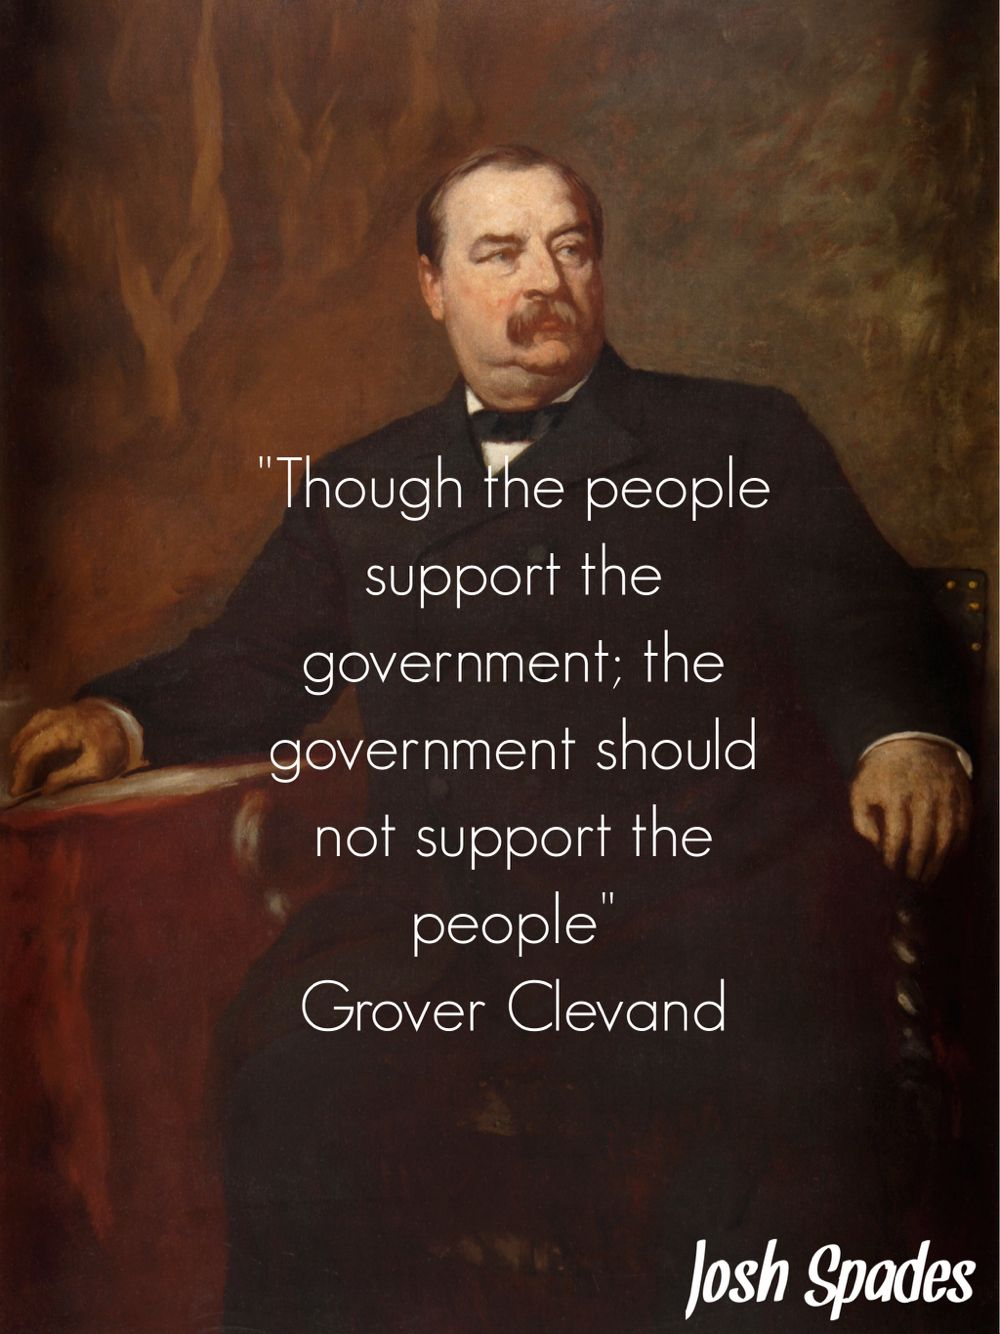 Grover Cleveland President Quotes Grover Cleveland